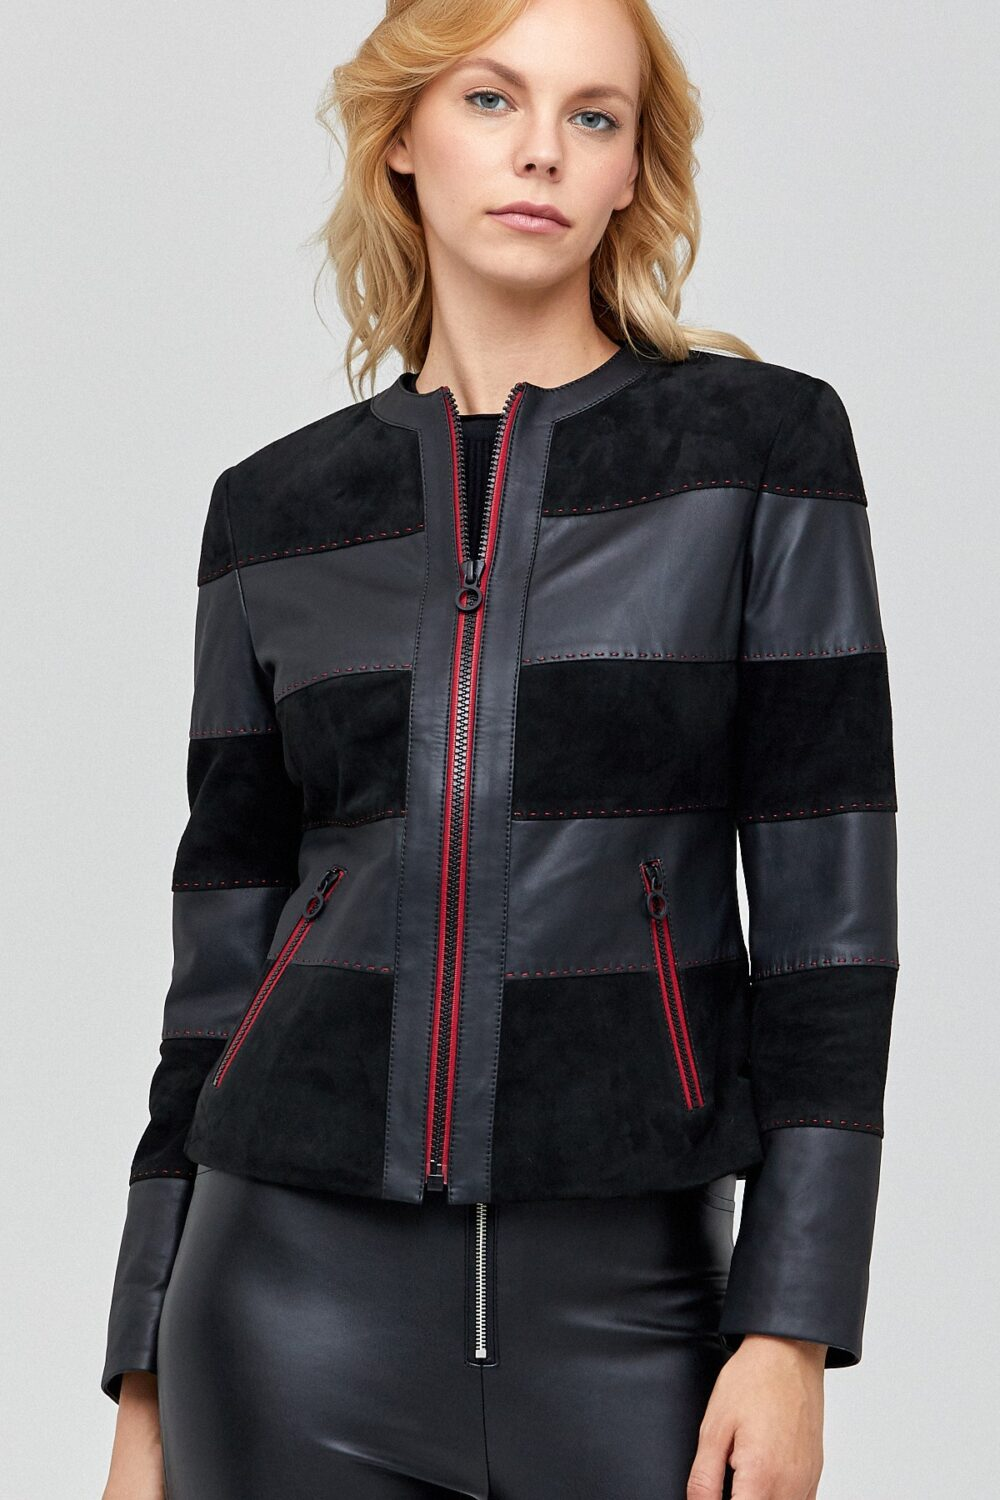 Leather Jacket Stores Near Me